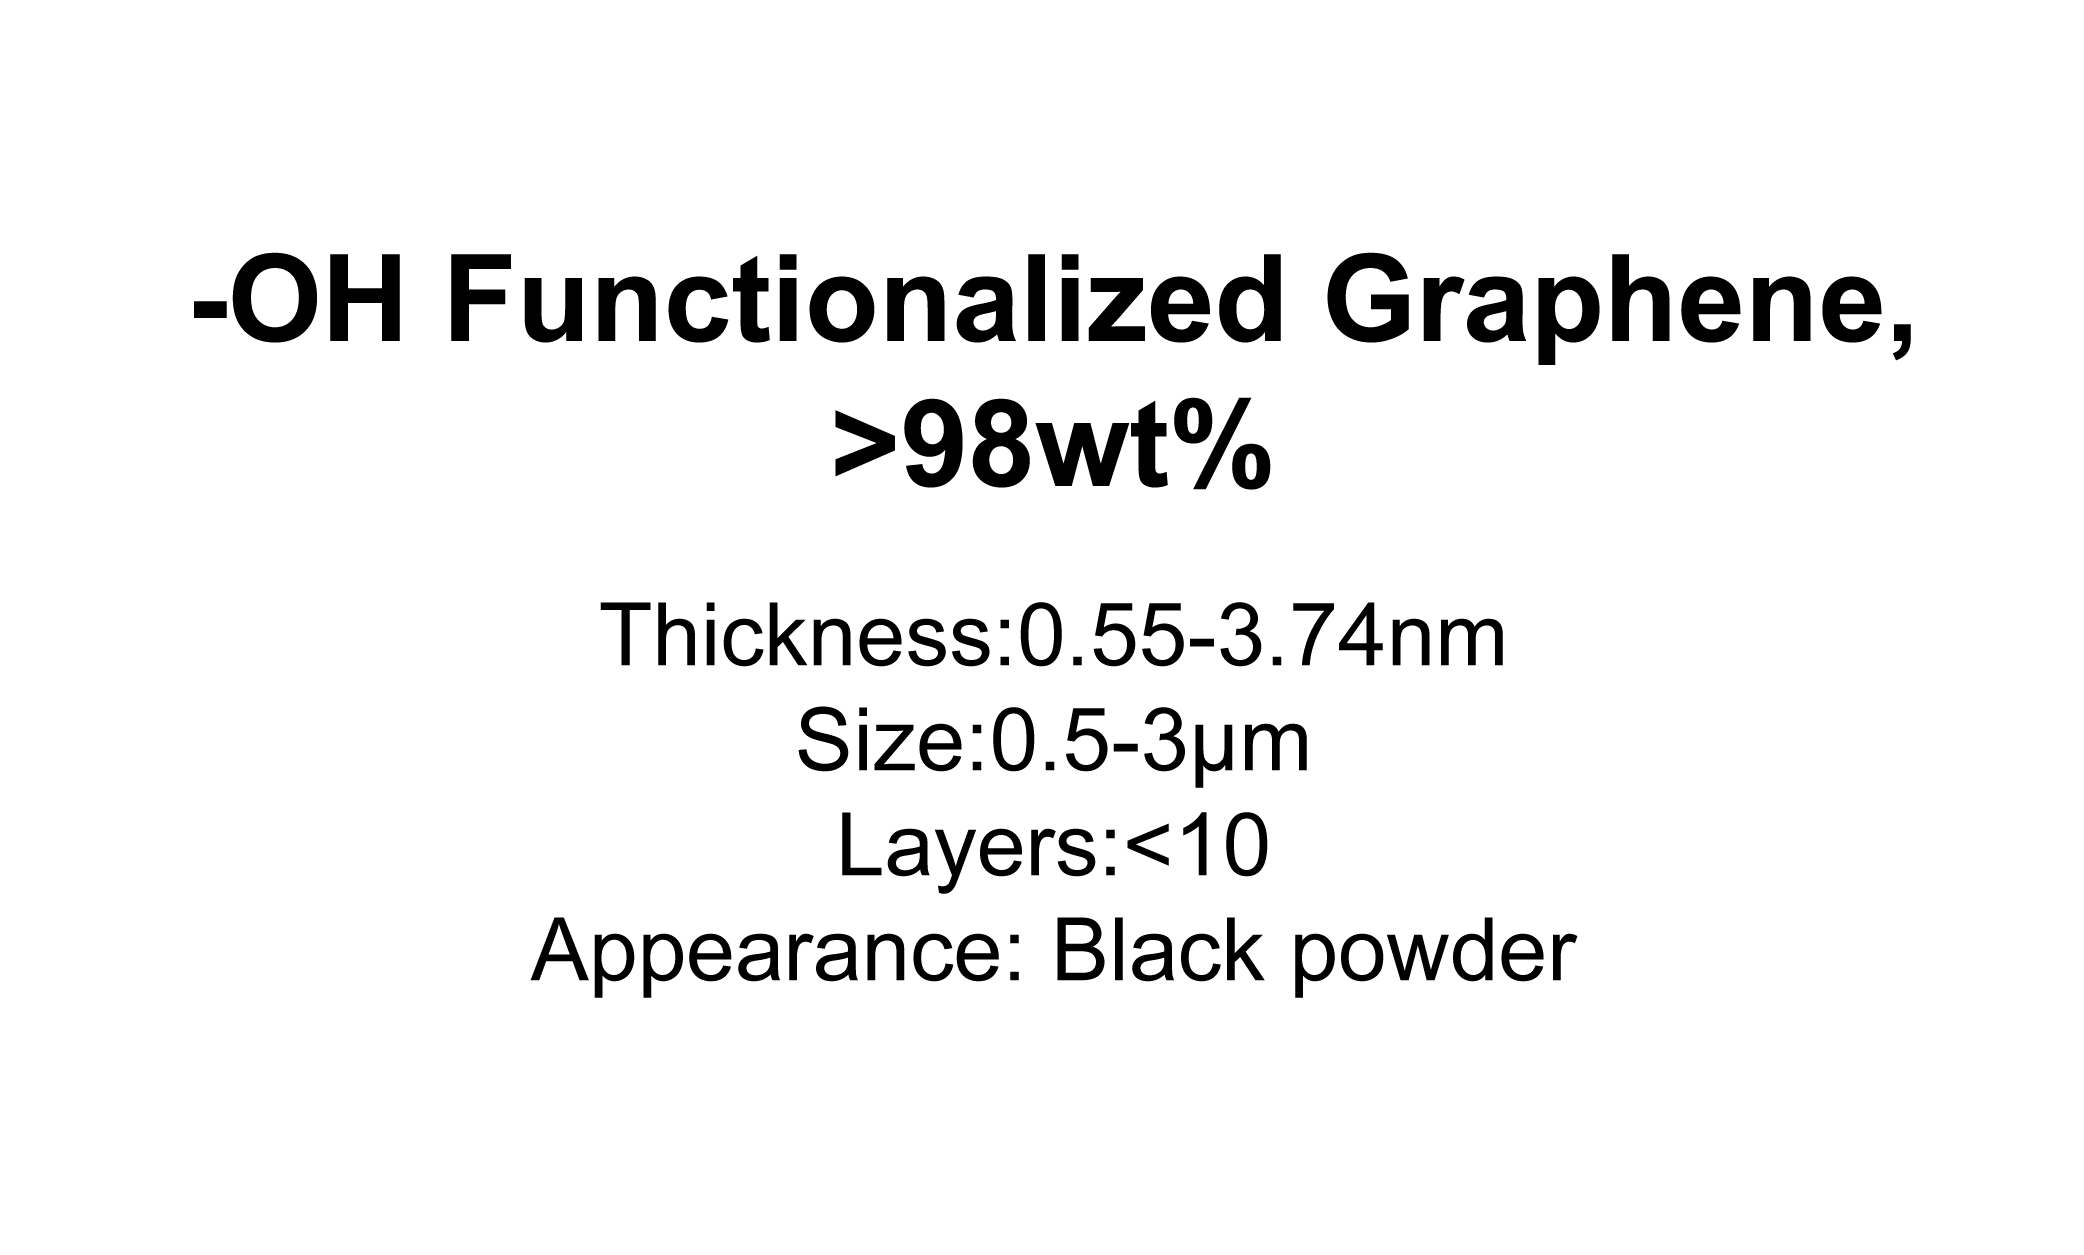 '-OH Functionalized Graphene, >98wt%